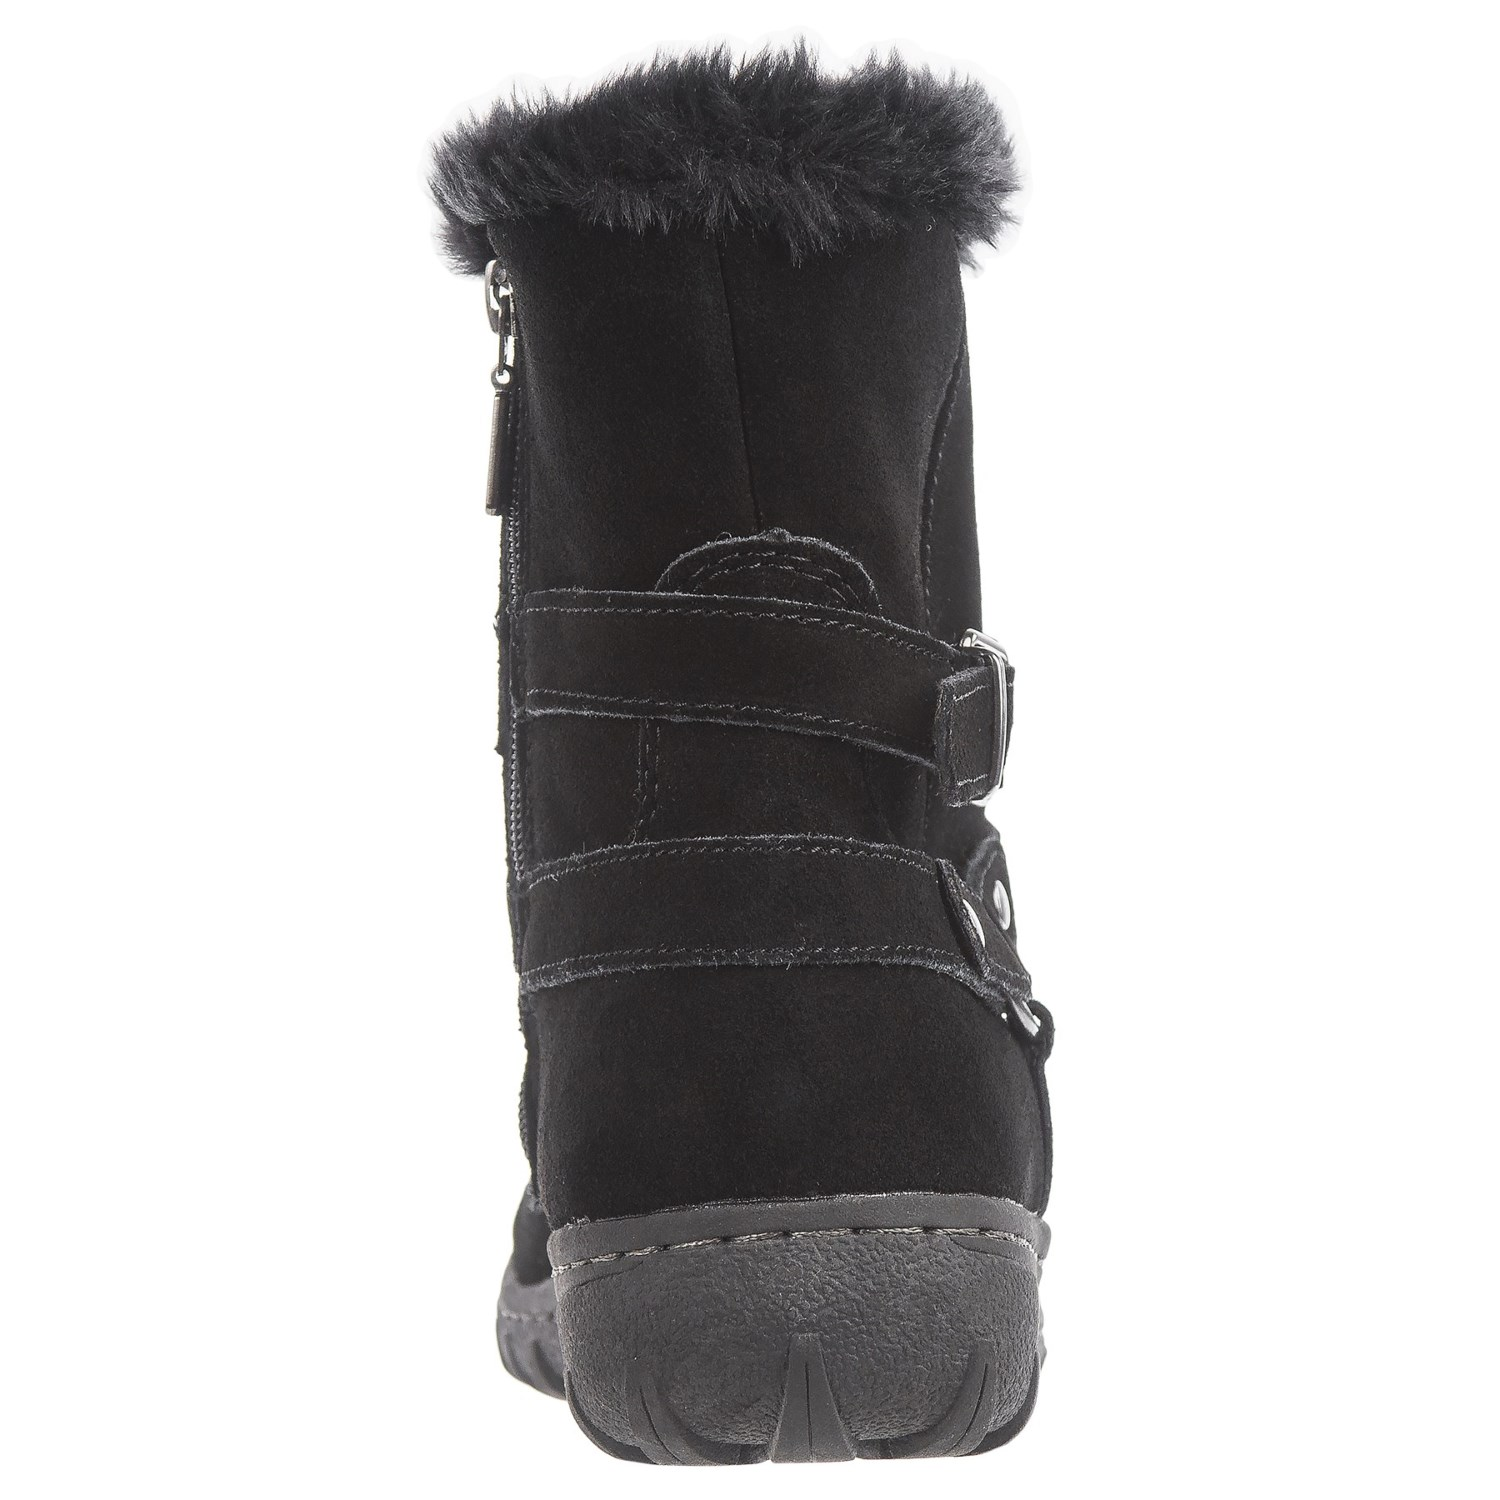 Khombu Kelly Snow Boots (For Women) - Save 77%